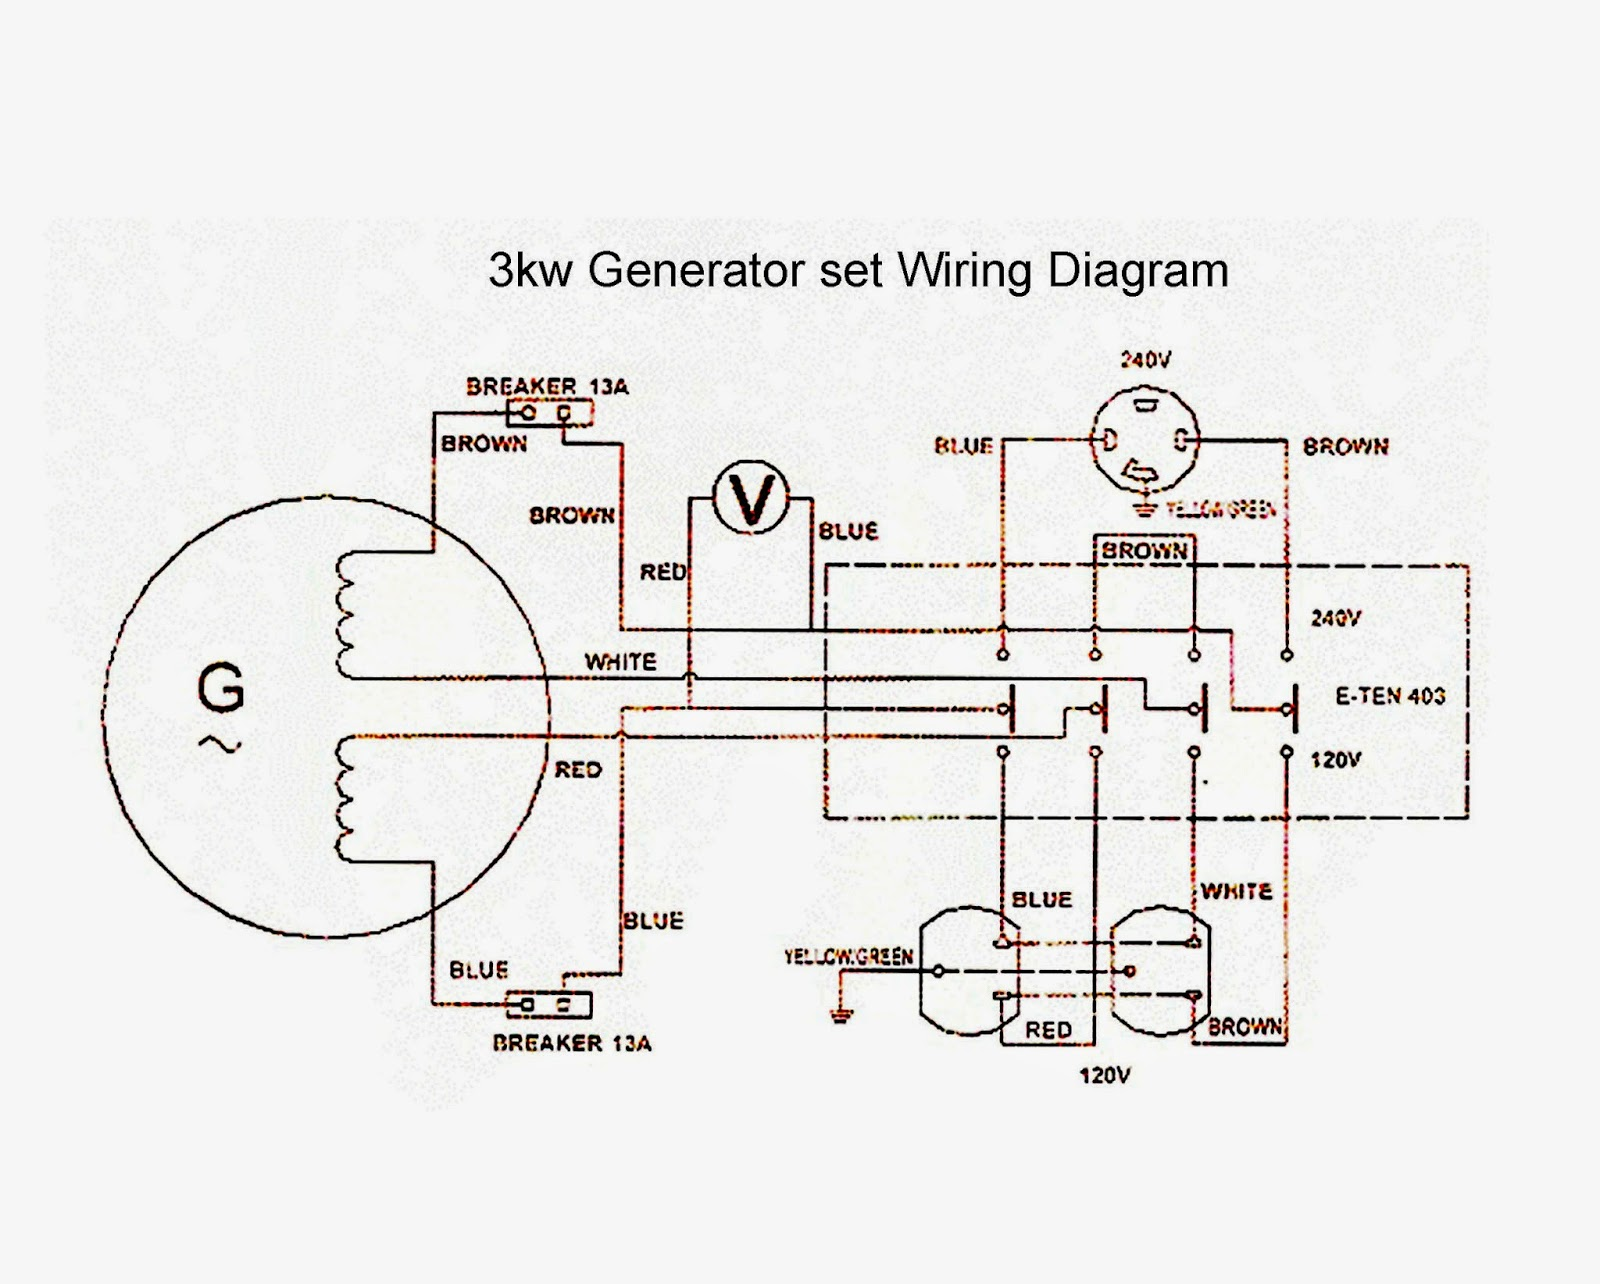 3000w+gensetswiringdiagram+1 generator wiring diagram generator plug diagram \u2022 wiring diagrams 5000 Kva Transformer Arc at webbmarketing.co